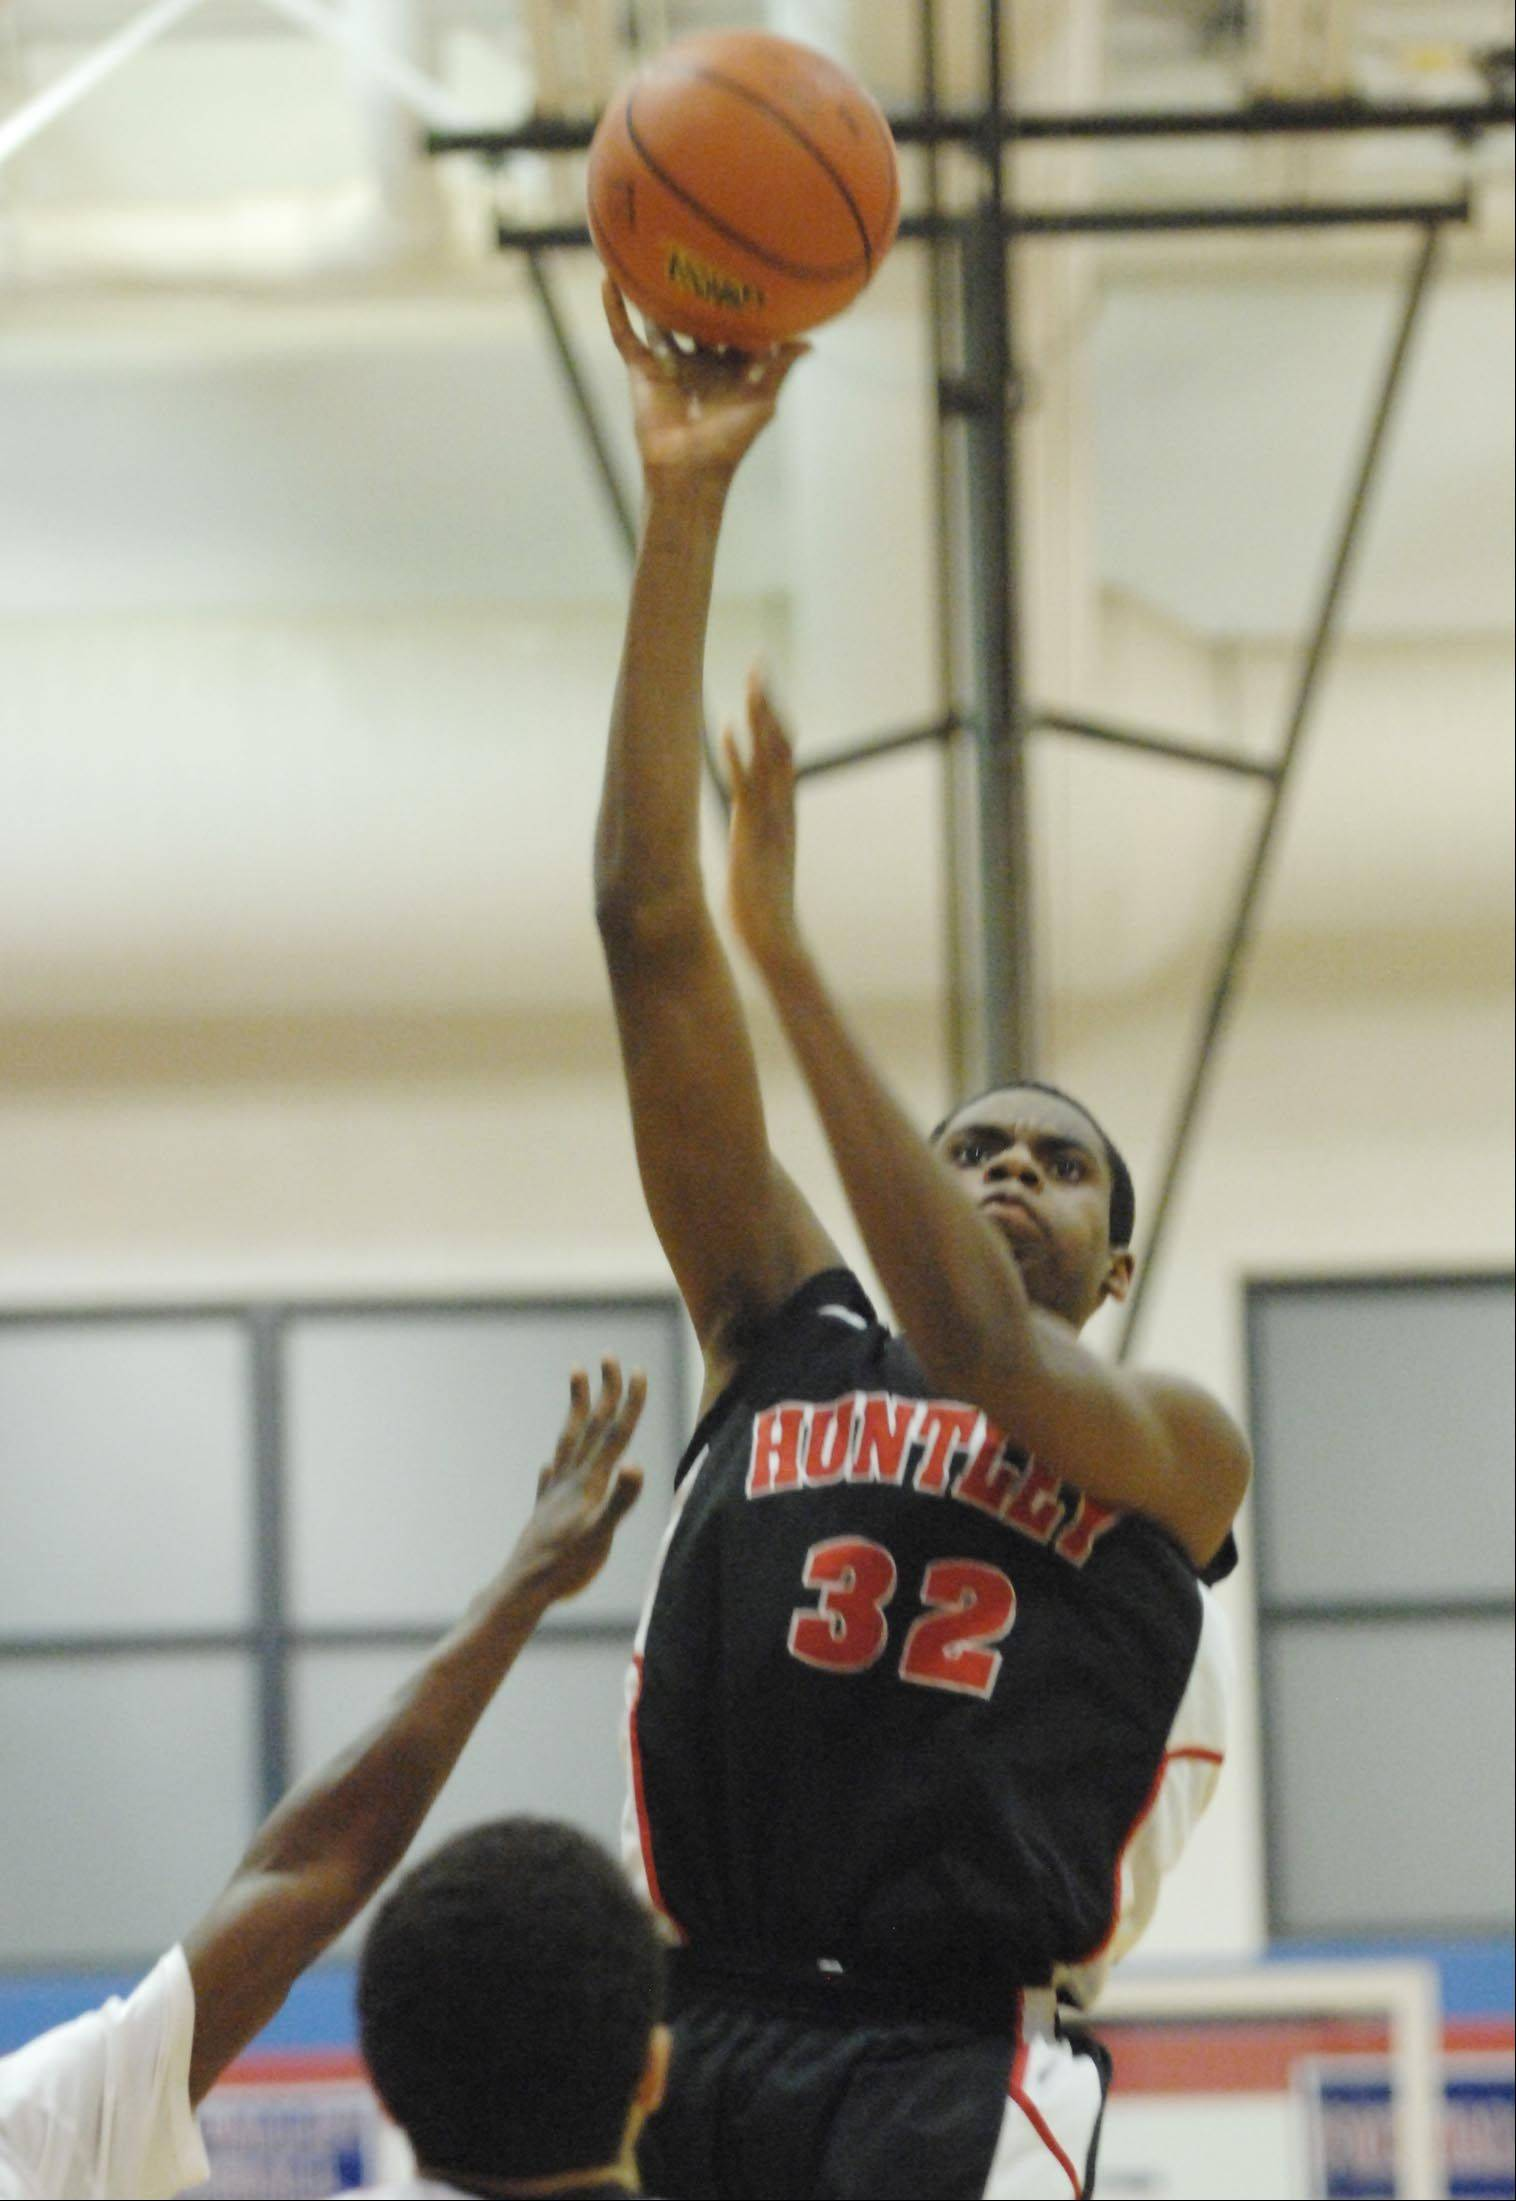 Images from the Huntley vs. Rockford Auburn boys sectional basketball game on Tuesday, Mar. 6, 2012.